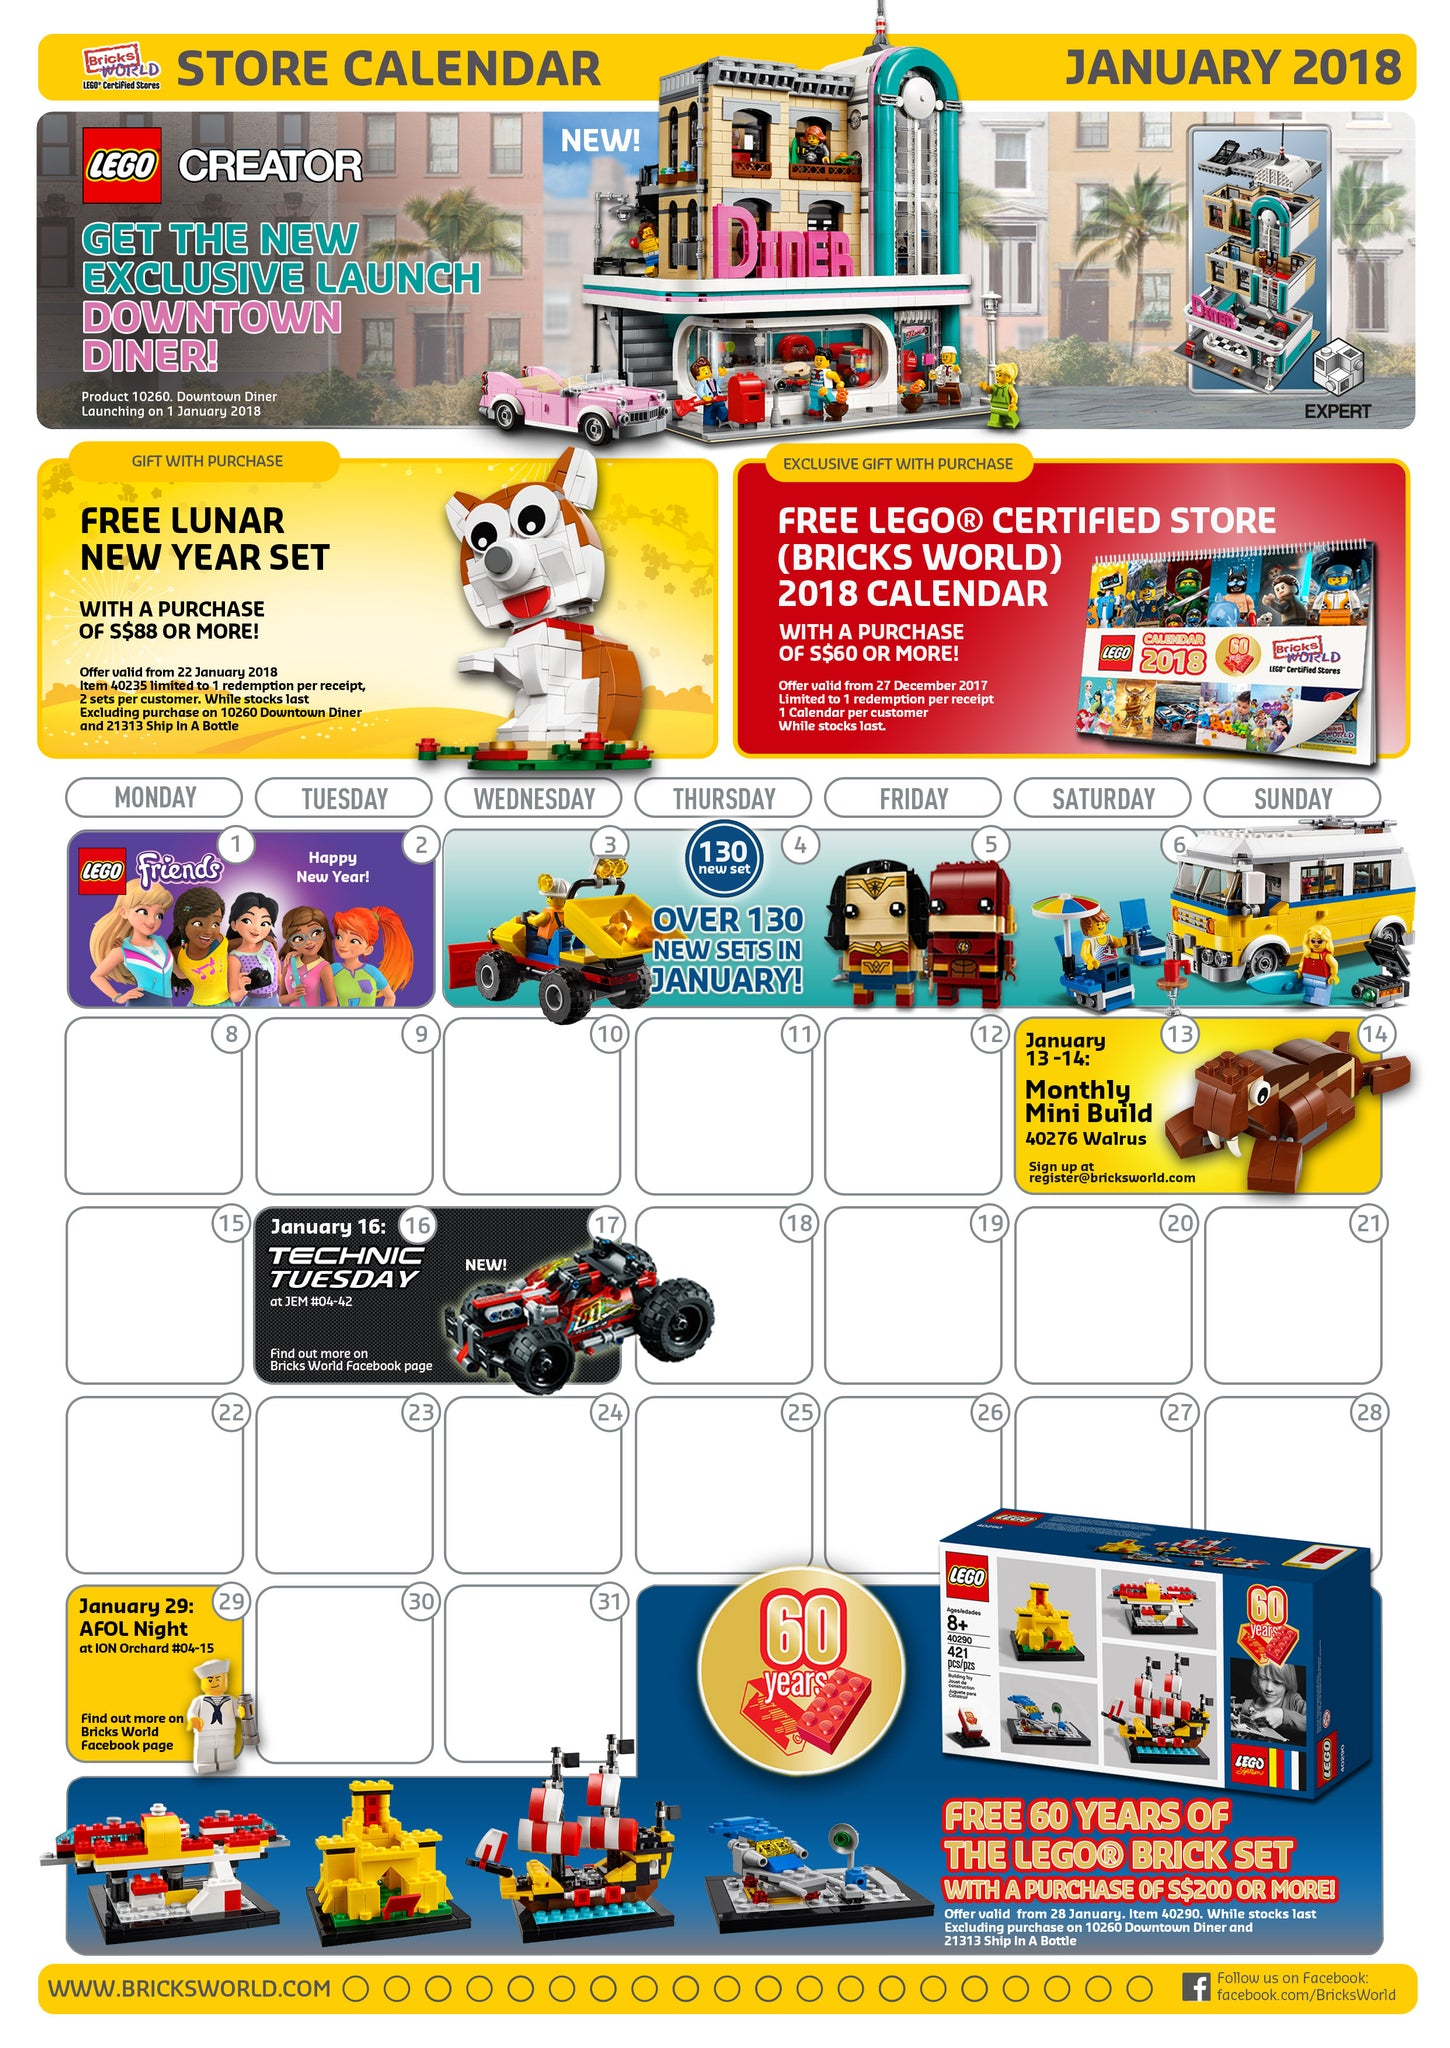 Lego 2019 January Calendar LEGO® Certified Stores (Bricks World) January 2018 Calendar